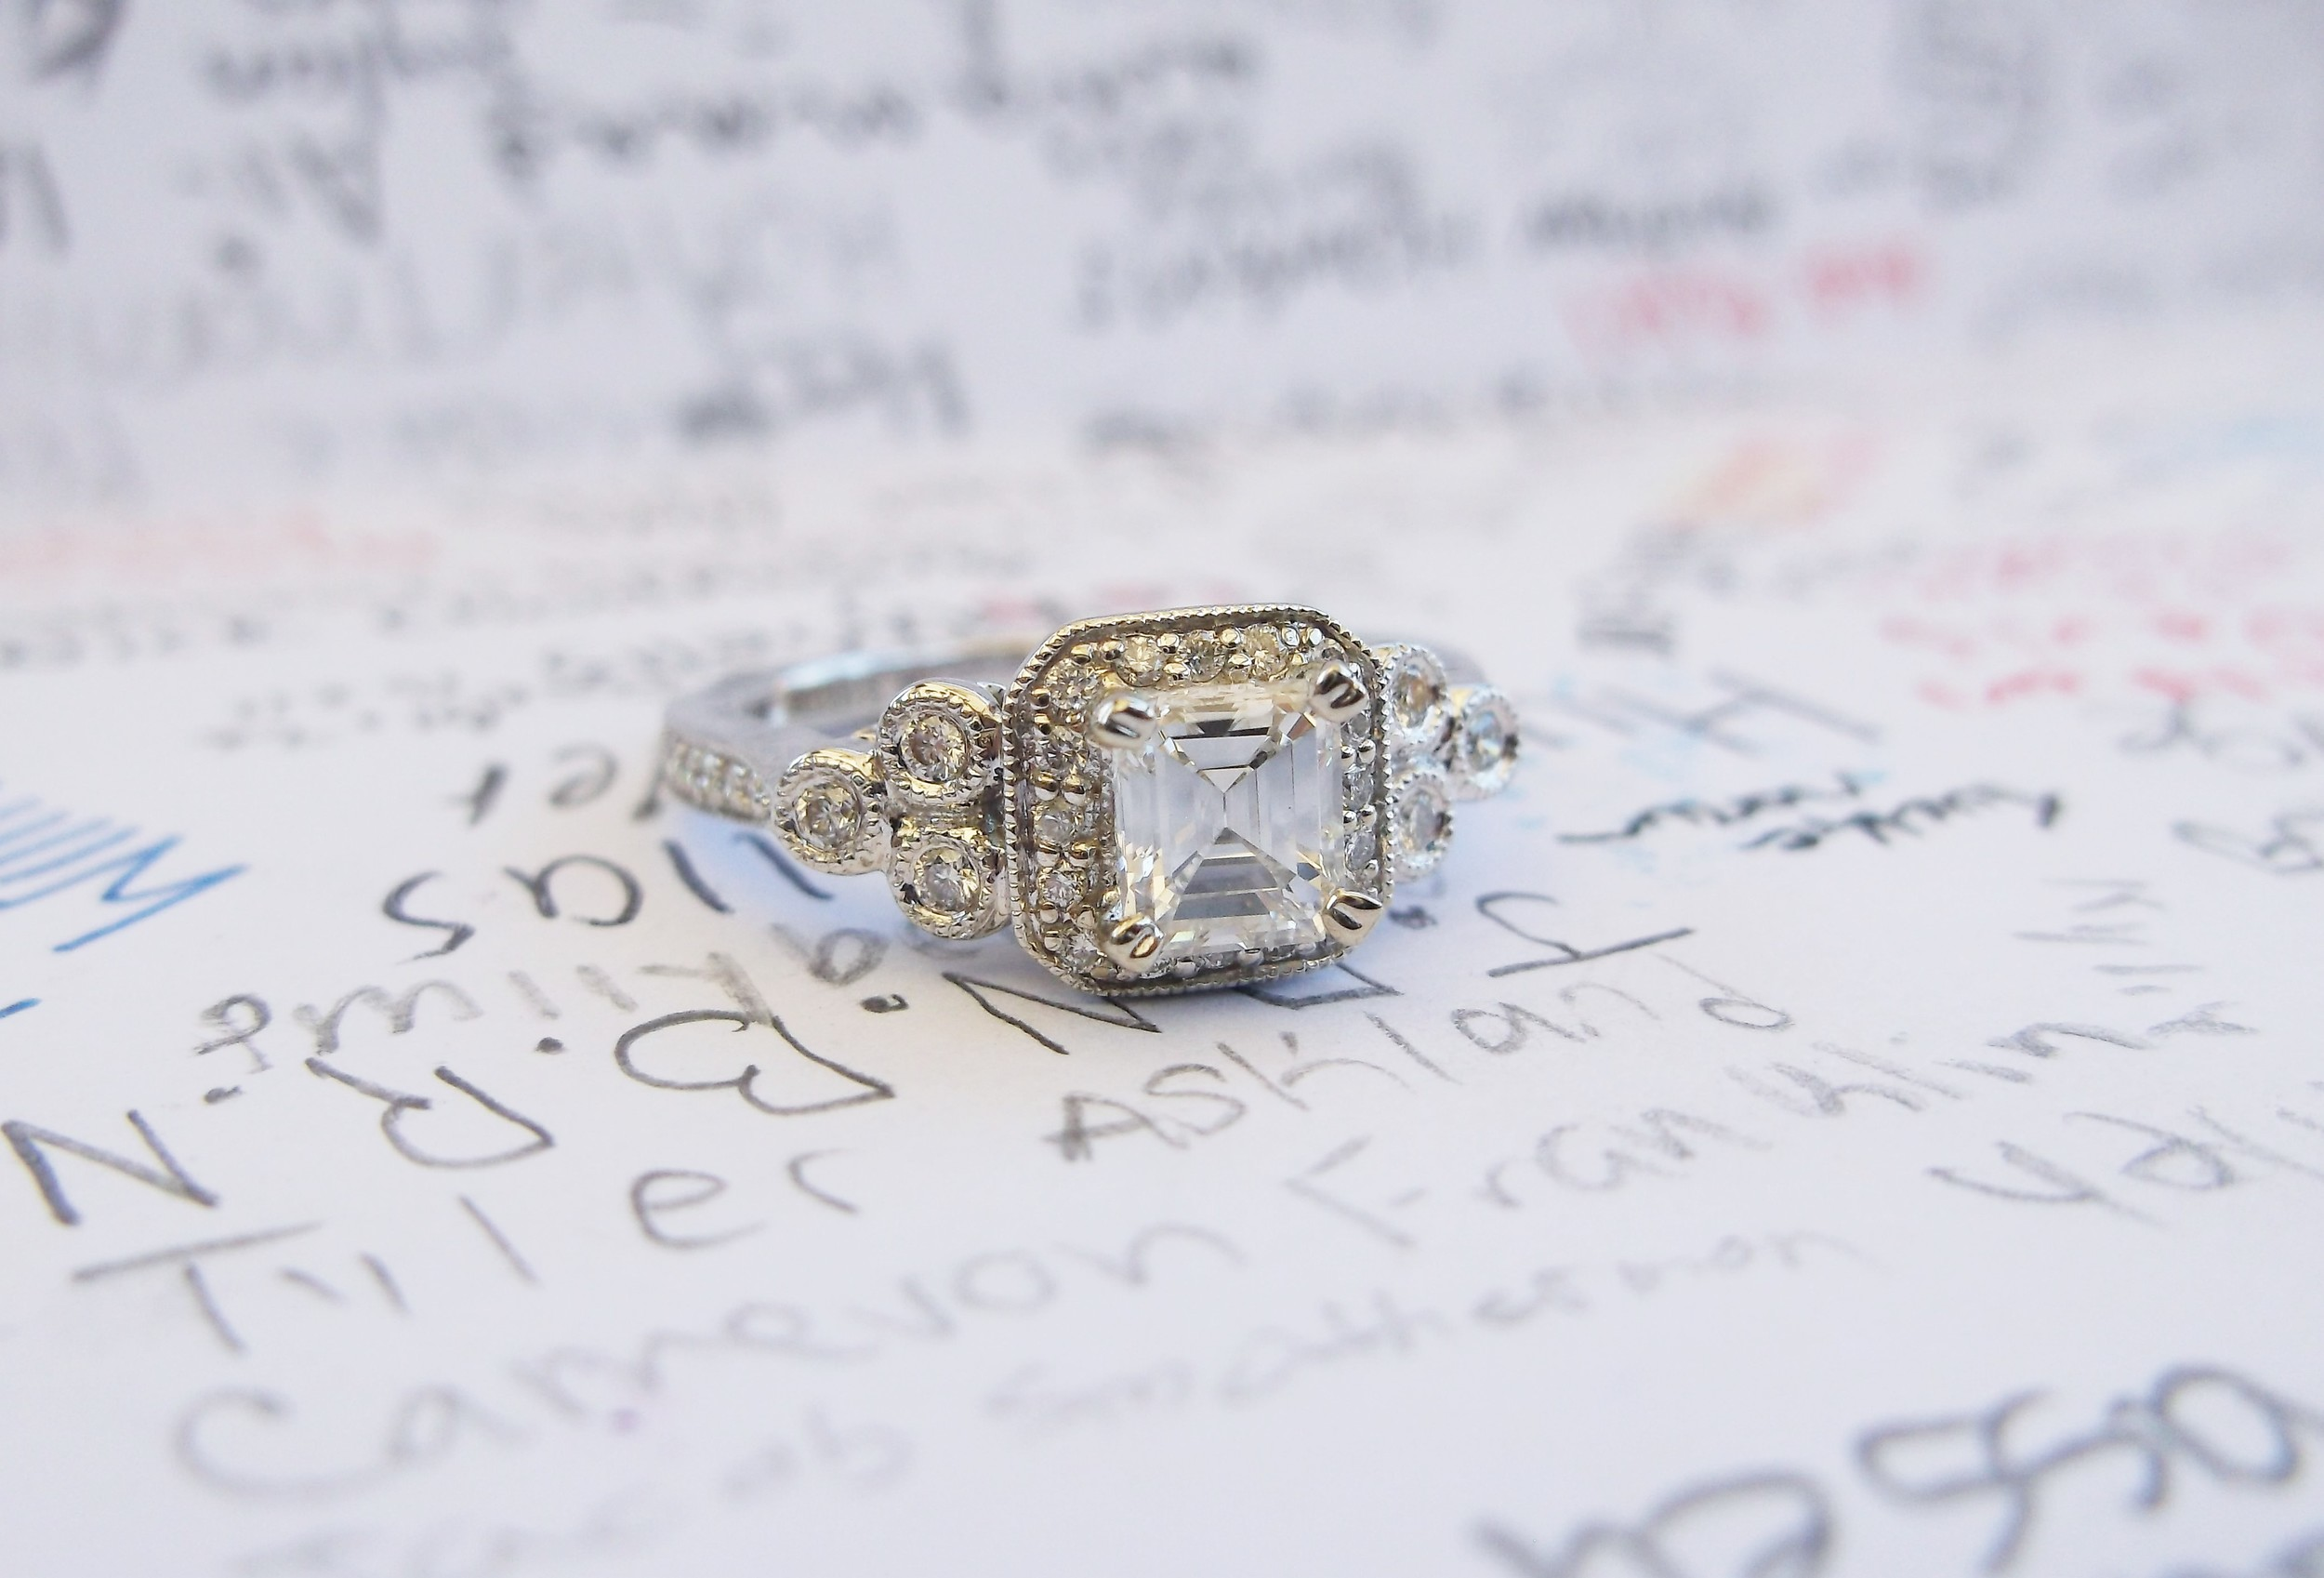 SOLD - Beautiful 0.49 carat emerald cut diamond set in a lovely white gold and diamond detail mounting.